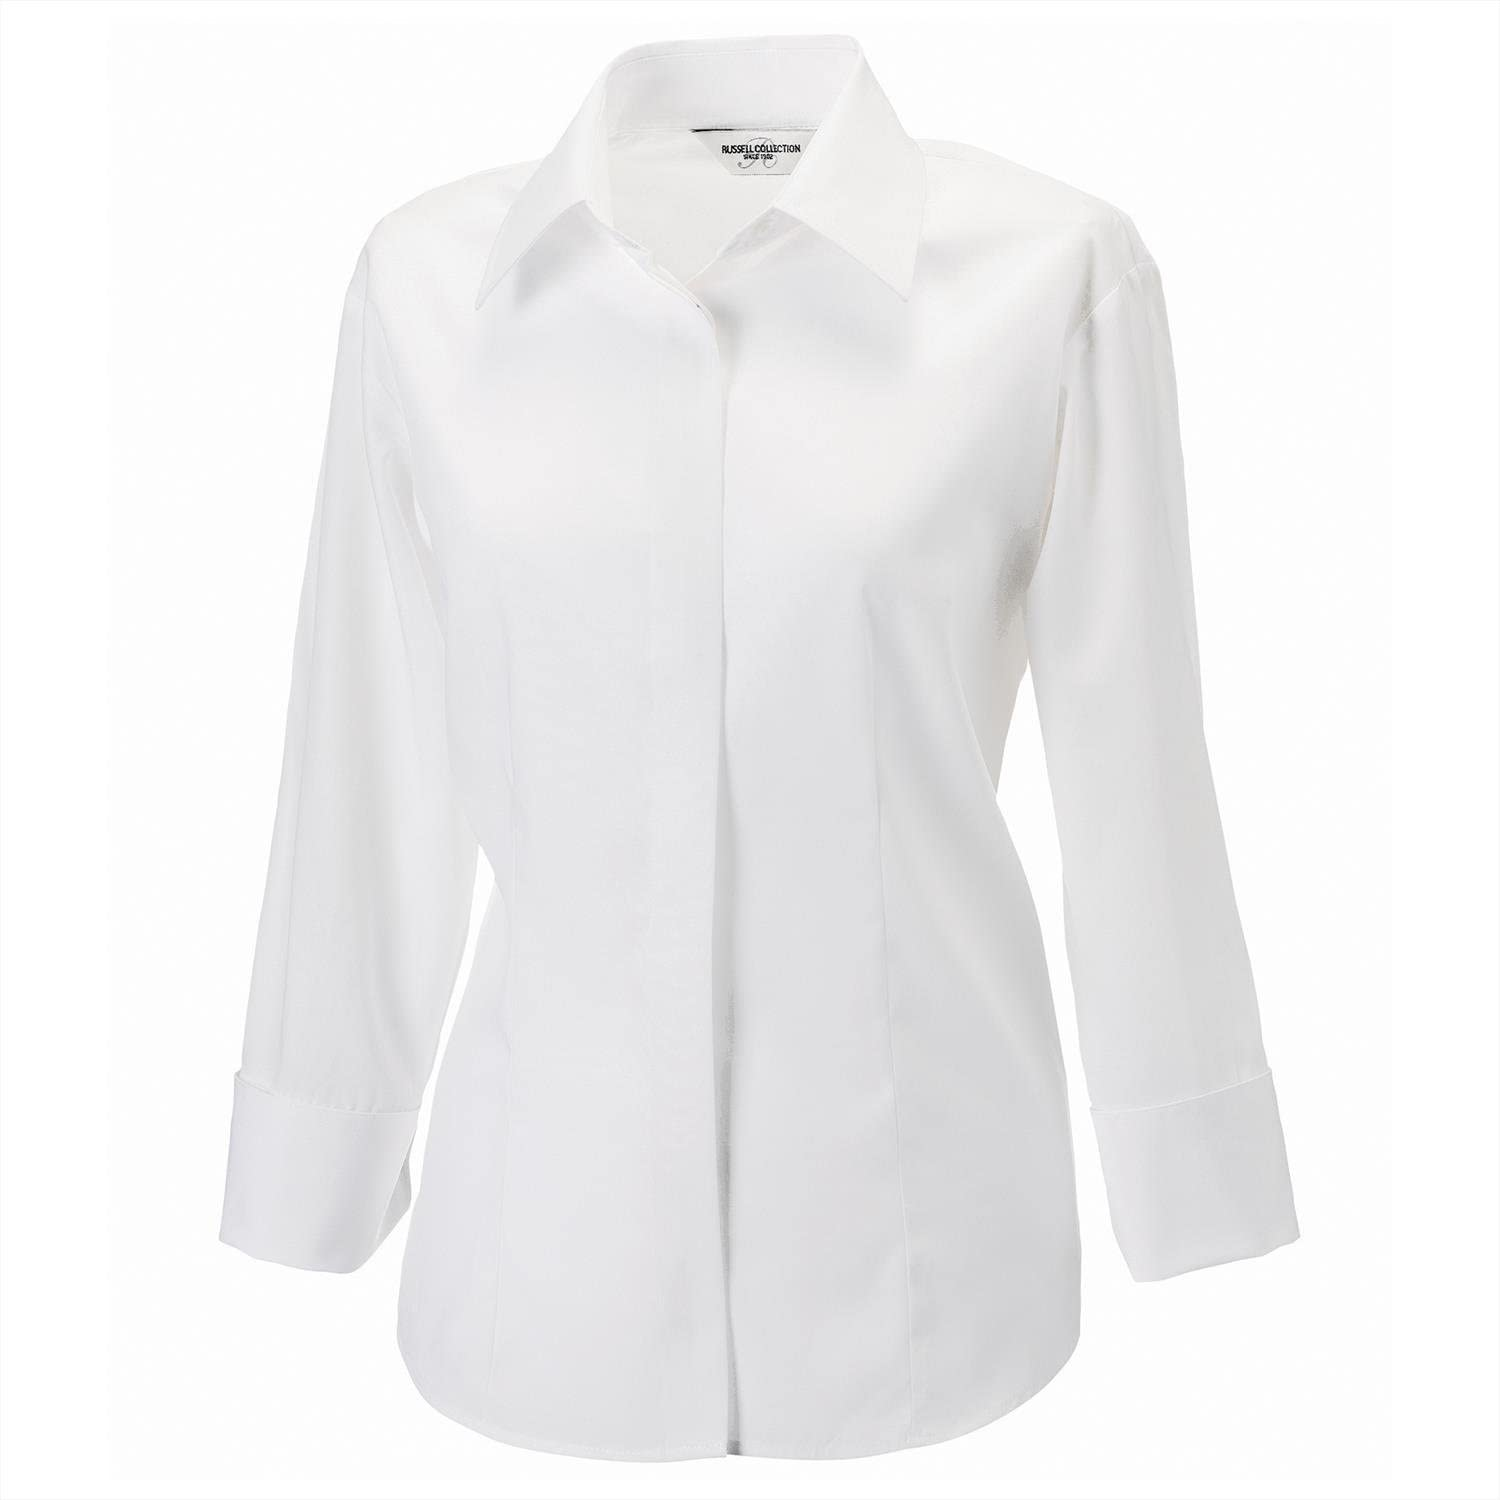 Russell Collection Womens Sleeve Tencel Shirt